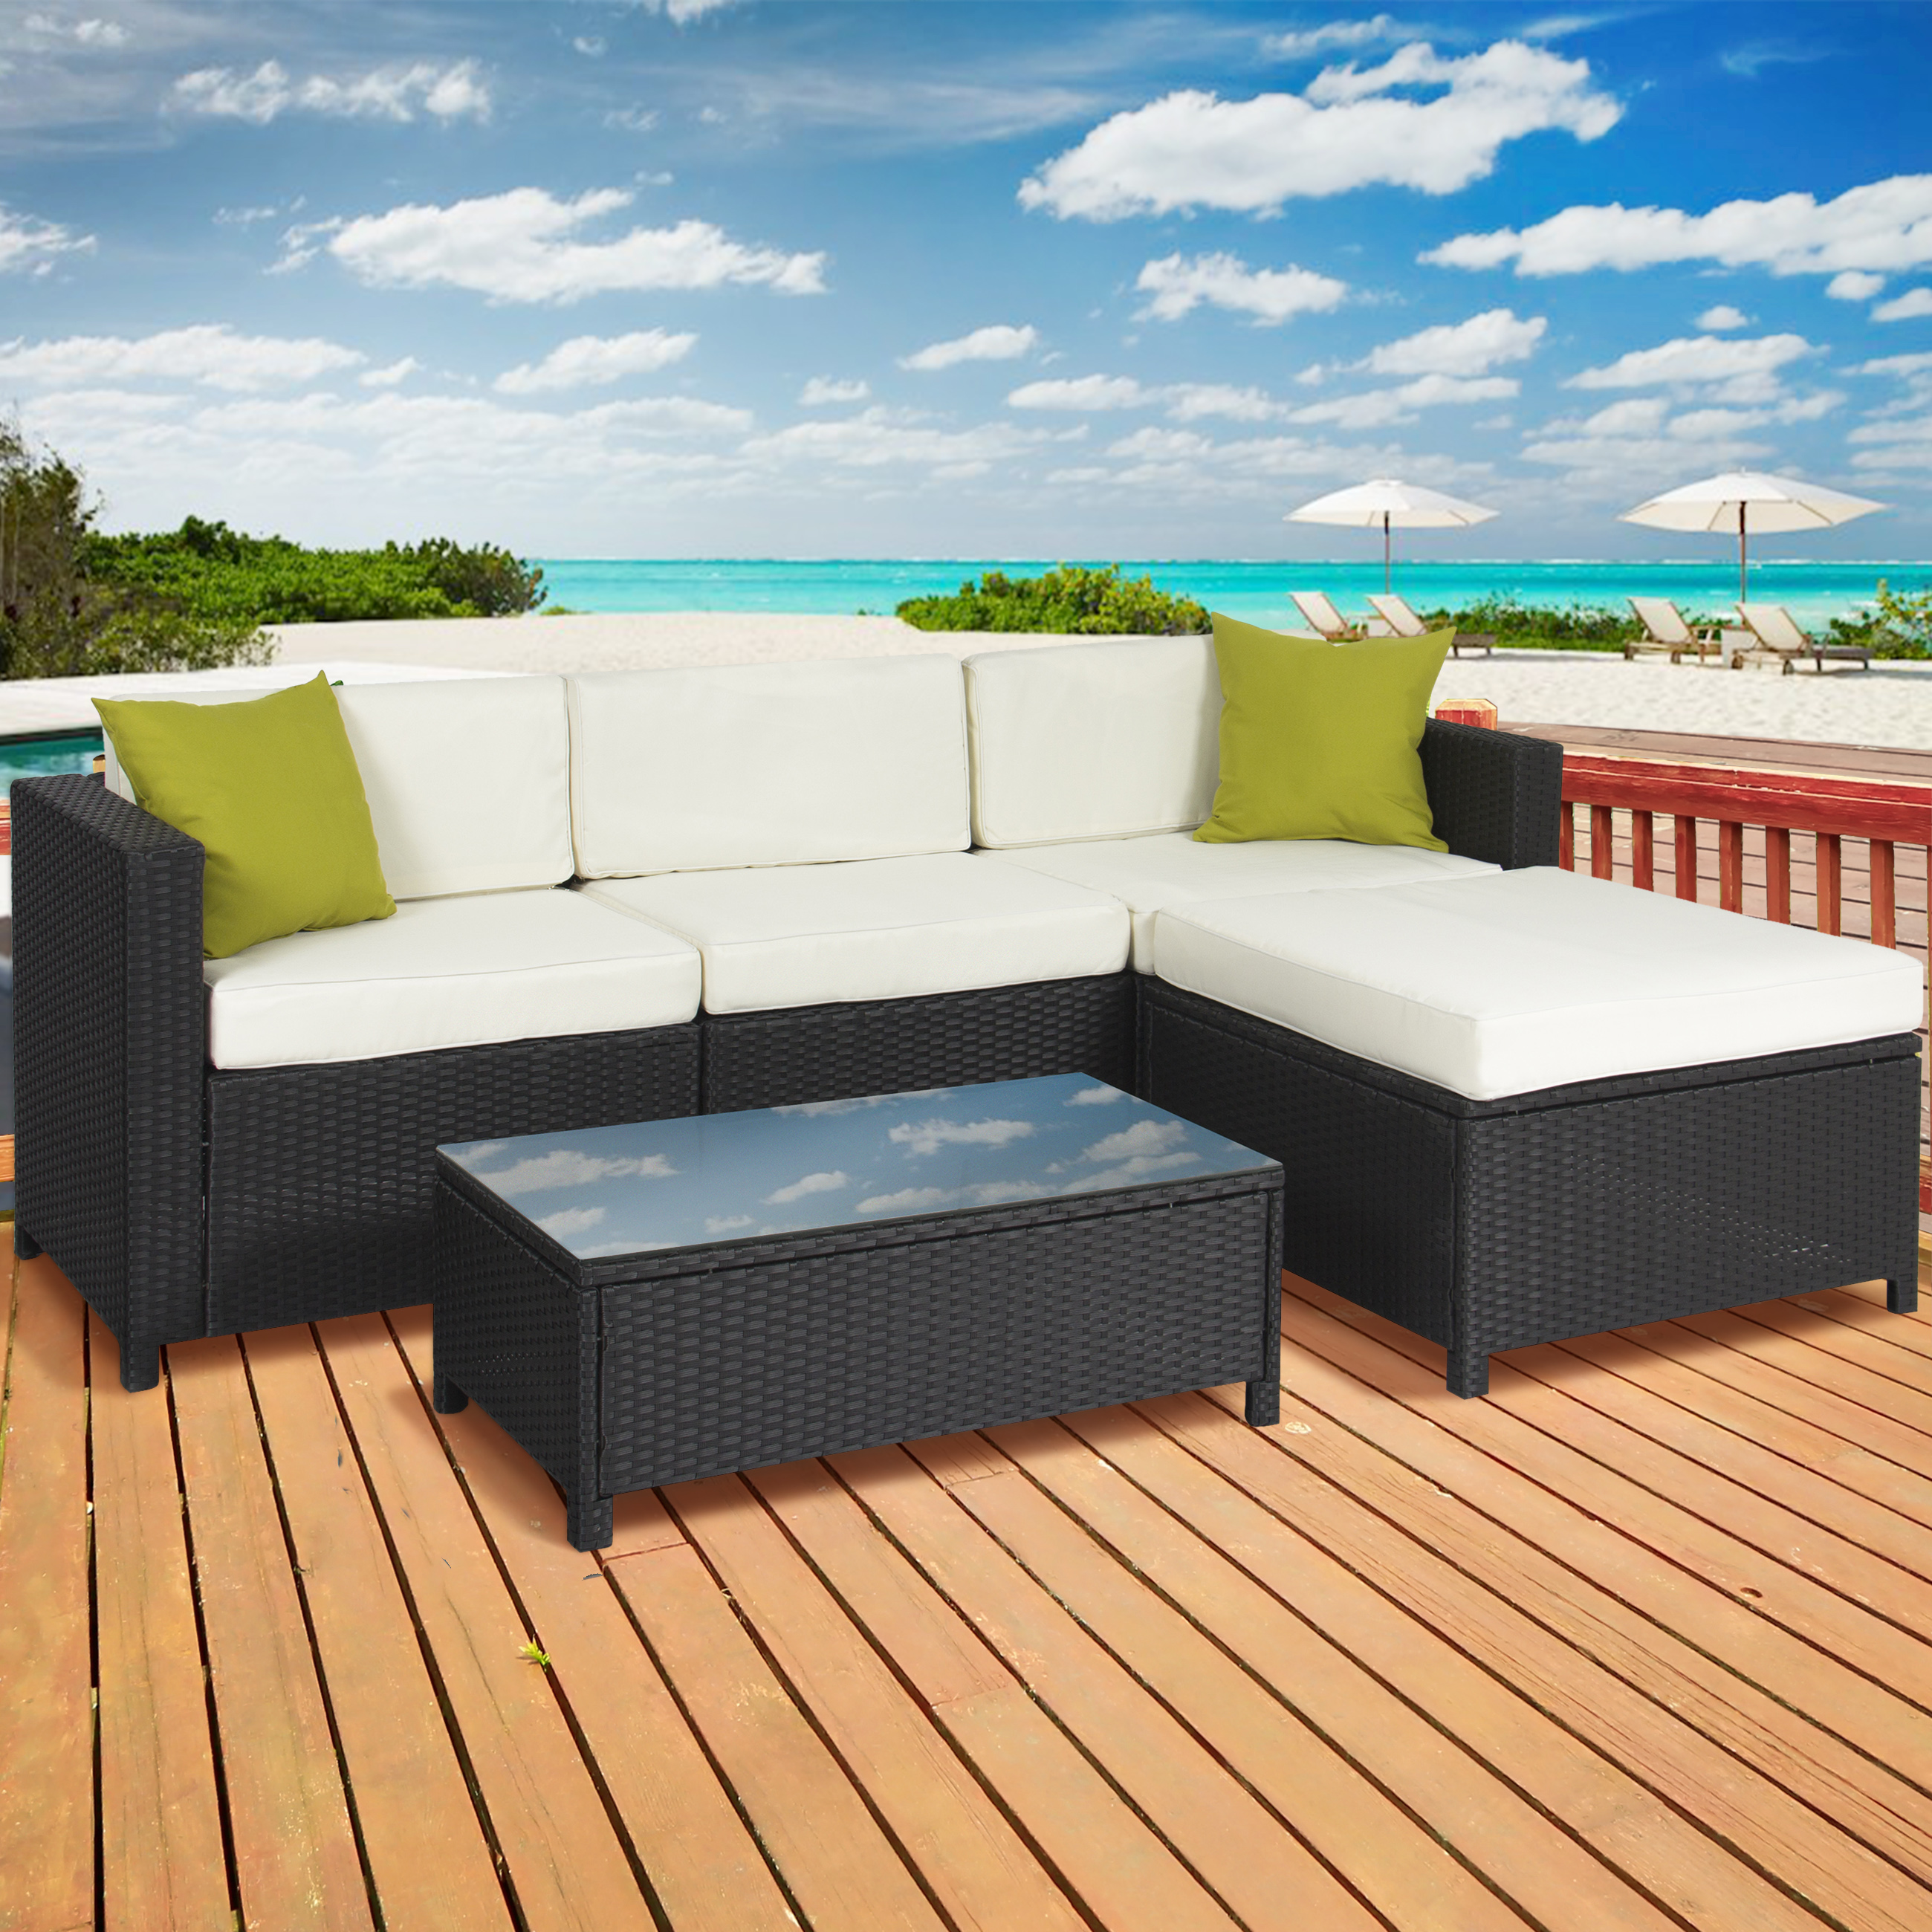 outdoor patio furniture cushioned 5pc rattan wicker aluminum frame sectional sofa set walmartcom - Garden Furniture 4 All